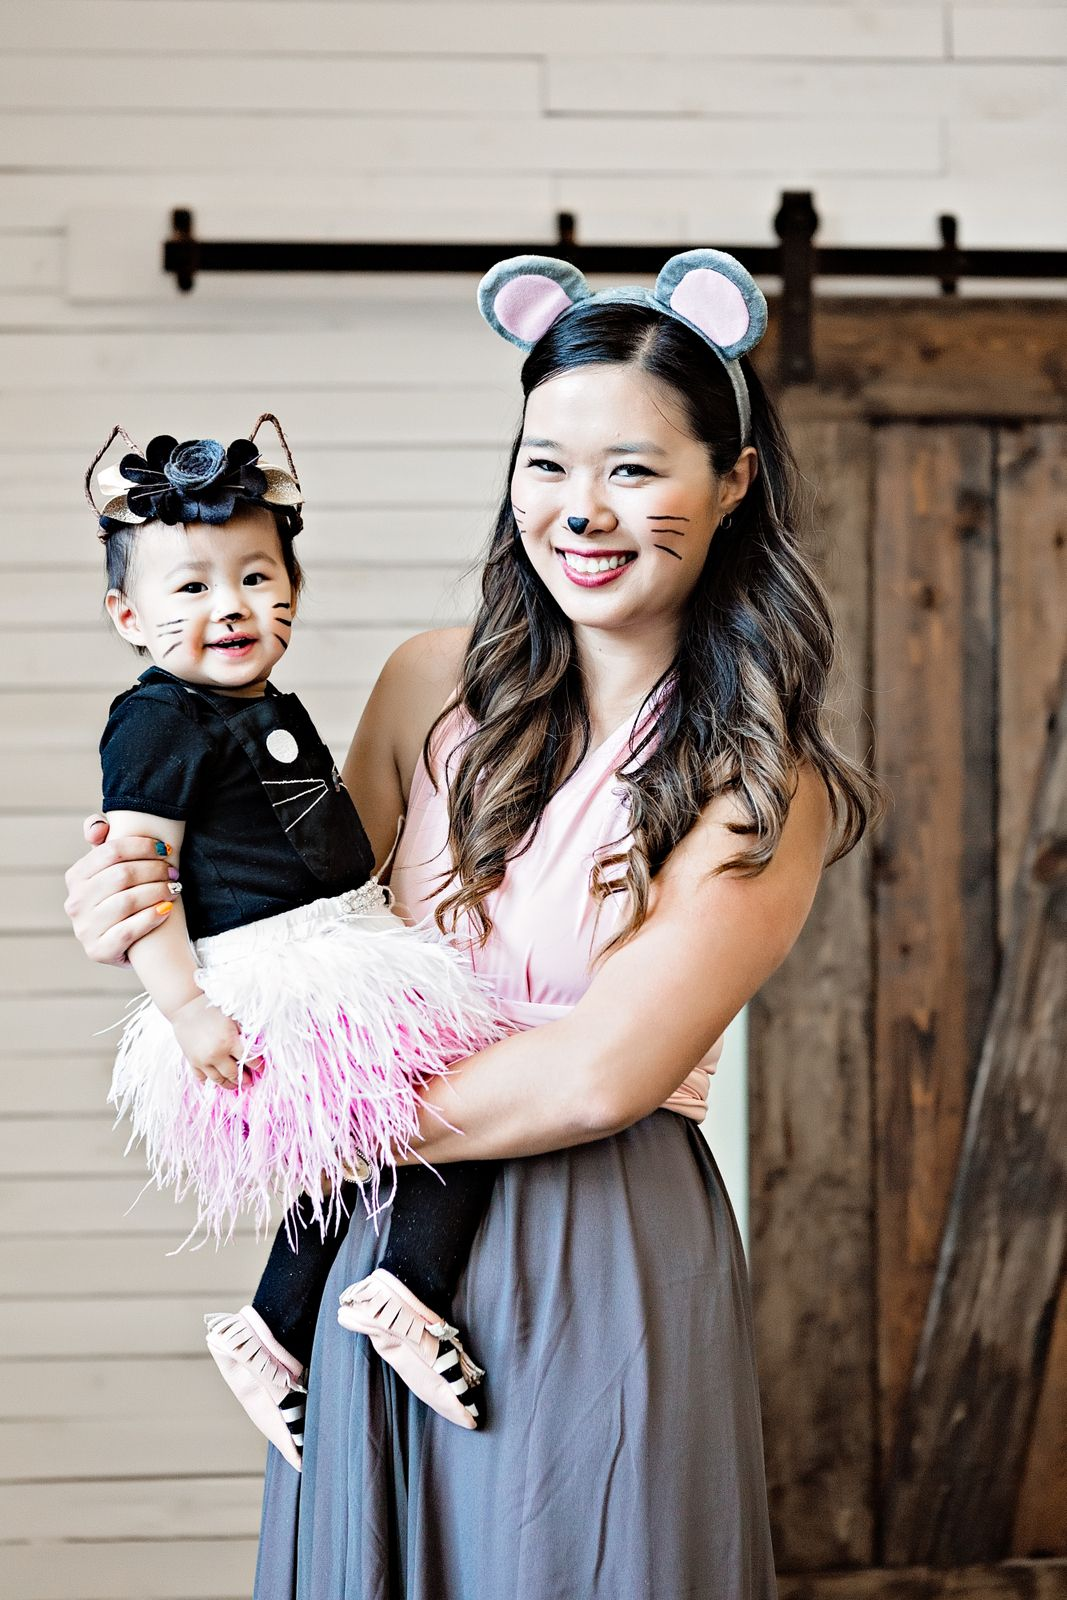 cat and mouse halloween costume pairing on trend tuesdays linkup